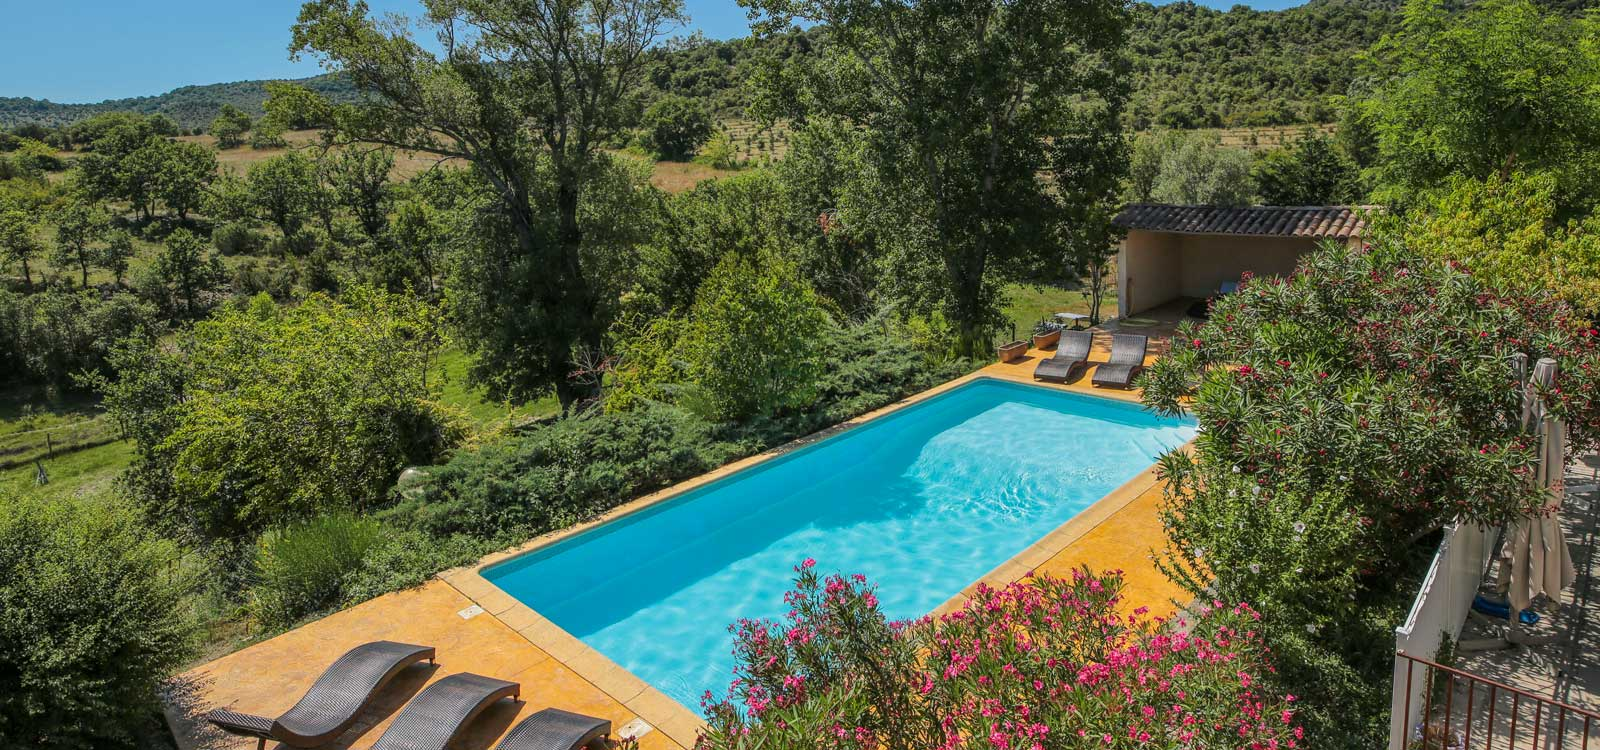 Gite ardeche g te vallon pont d 39 arc location gite de for Ardeche hotel avec piscine